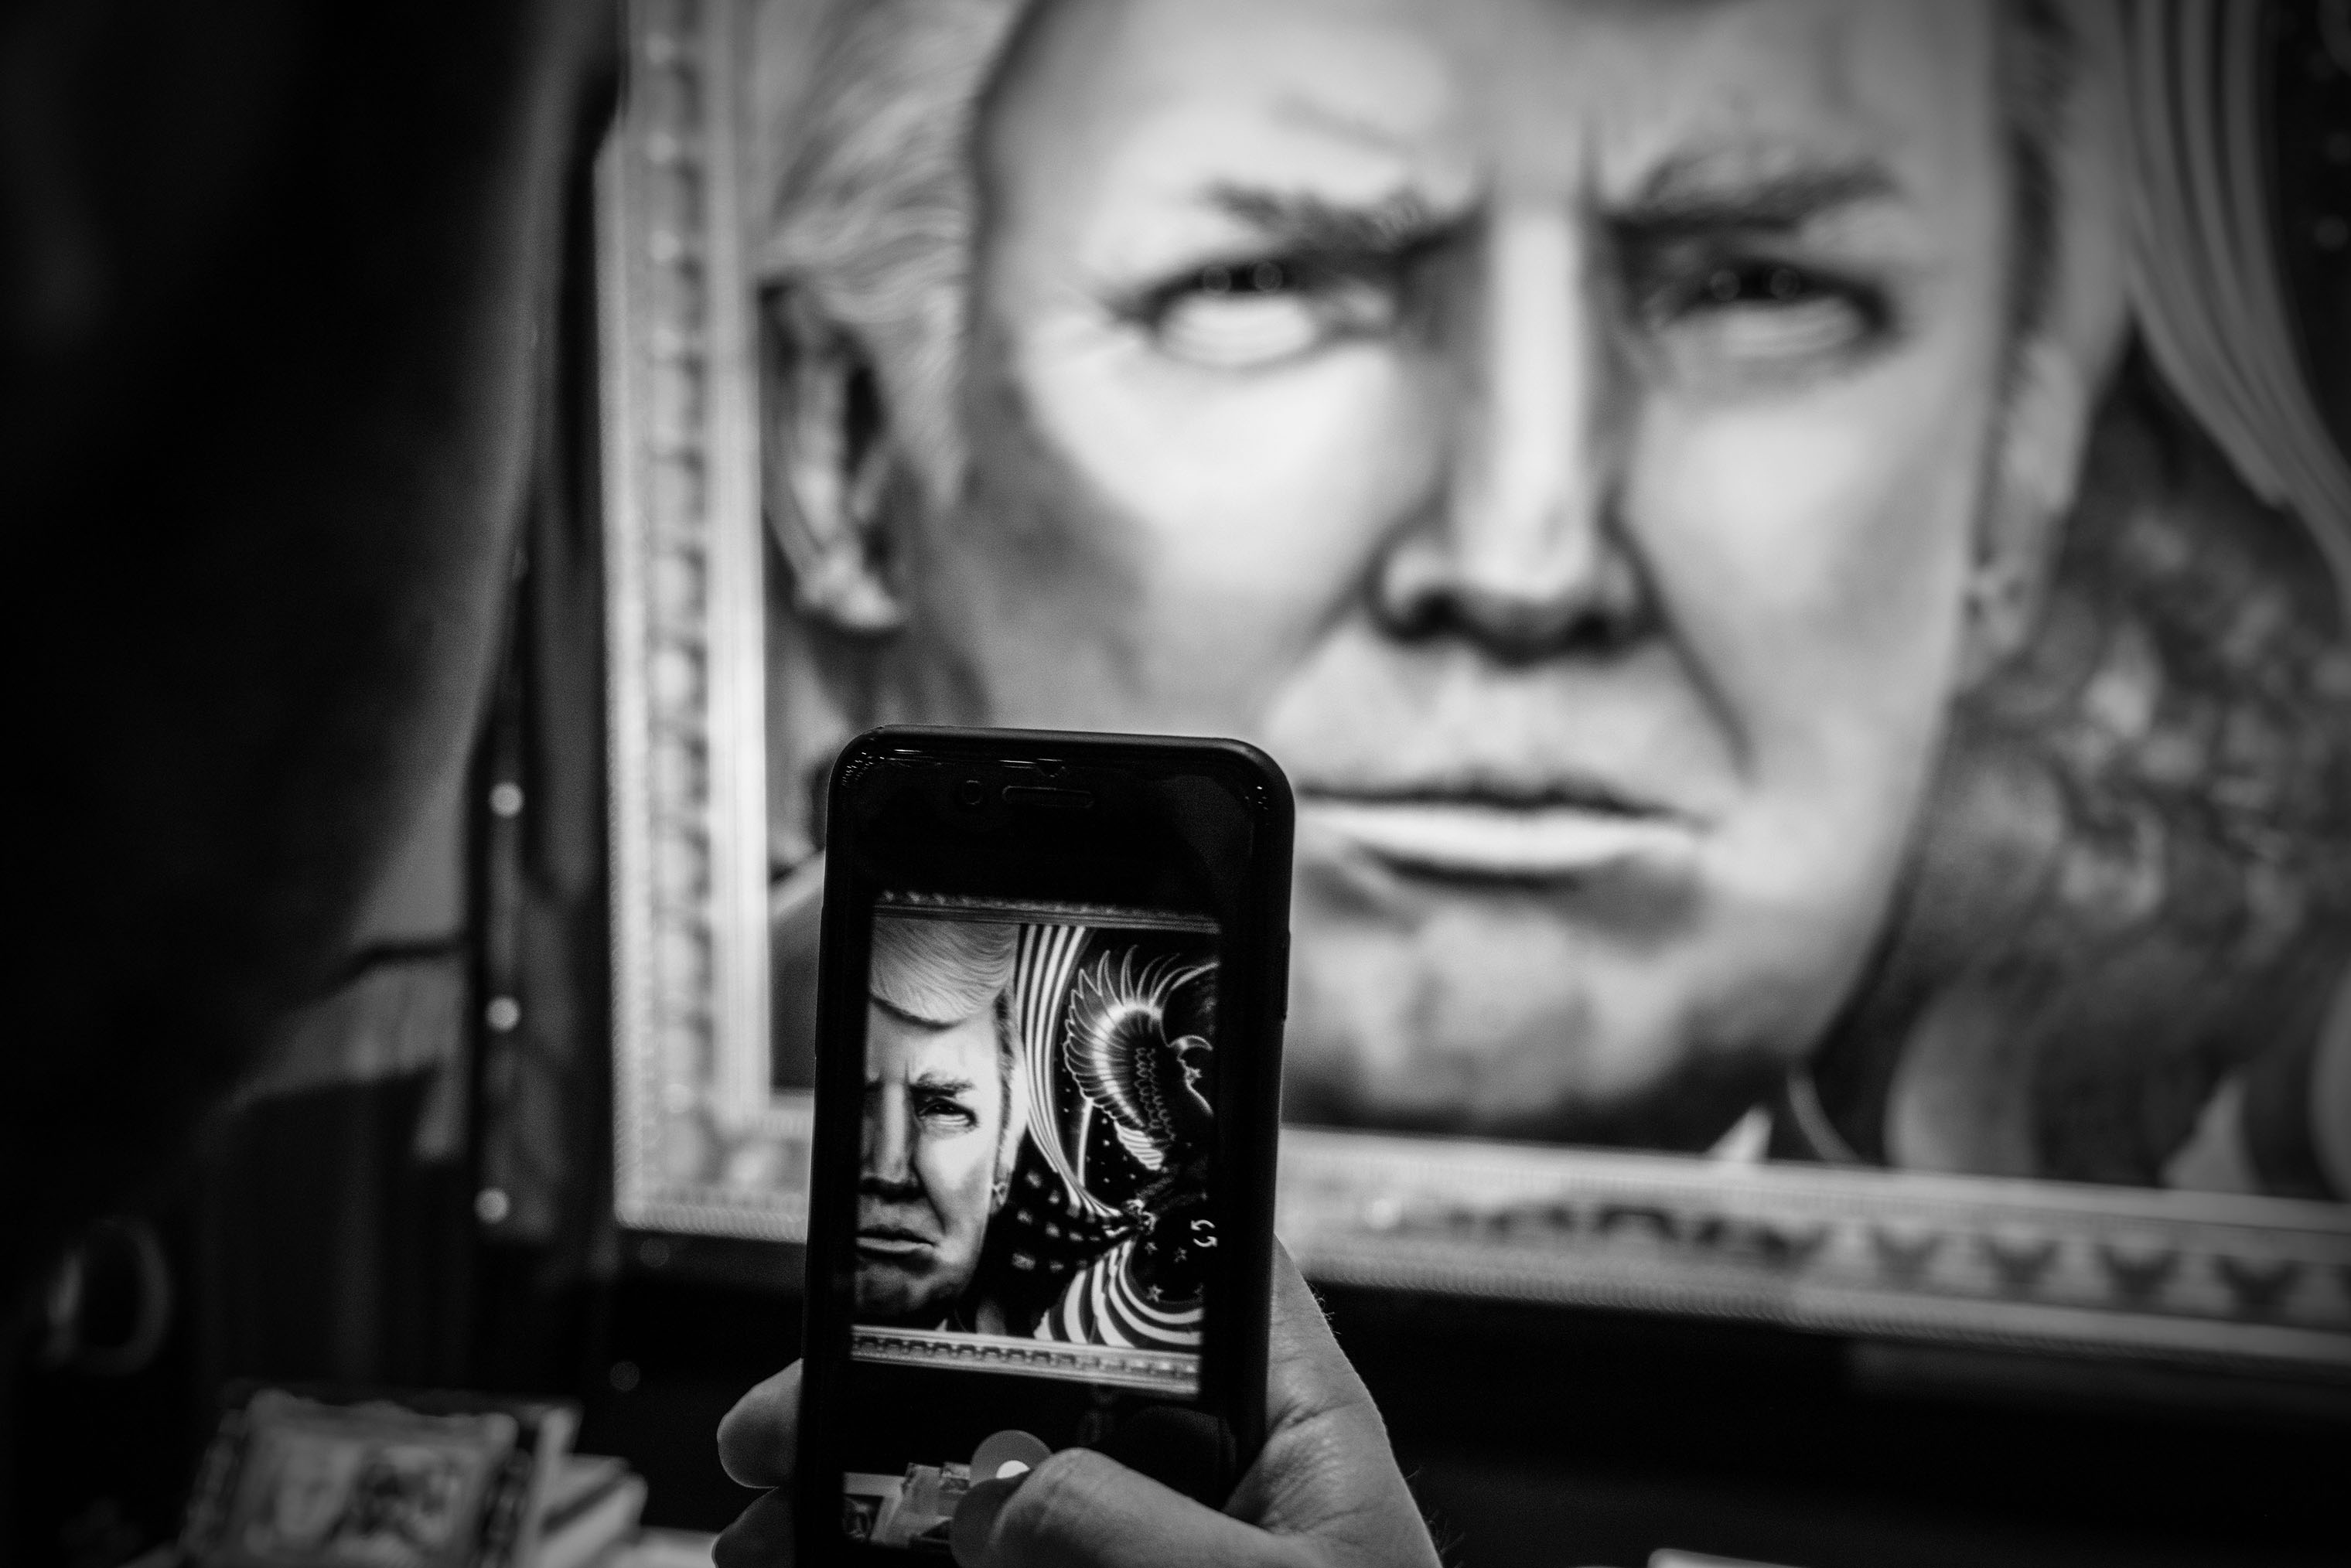 An attendee takes a photo of a painting of President Donald Trump with their phone.